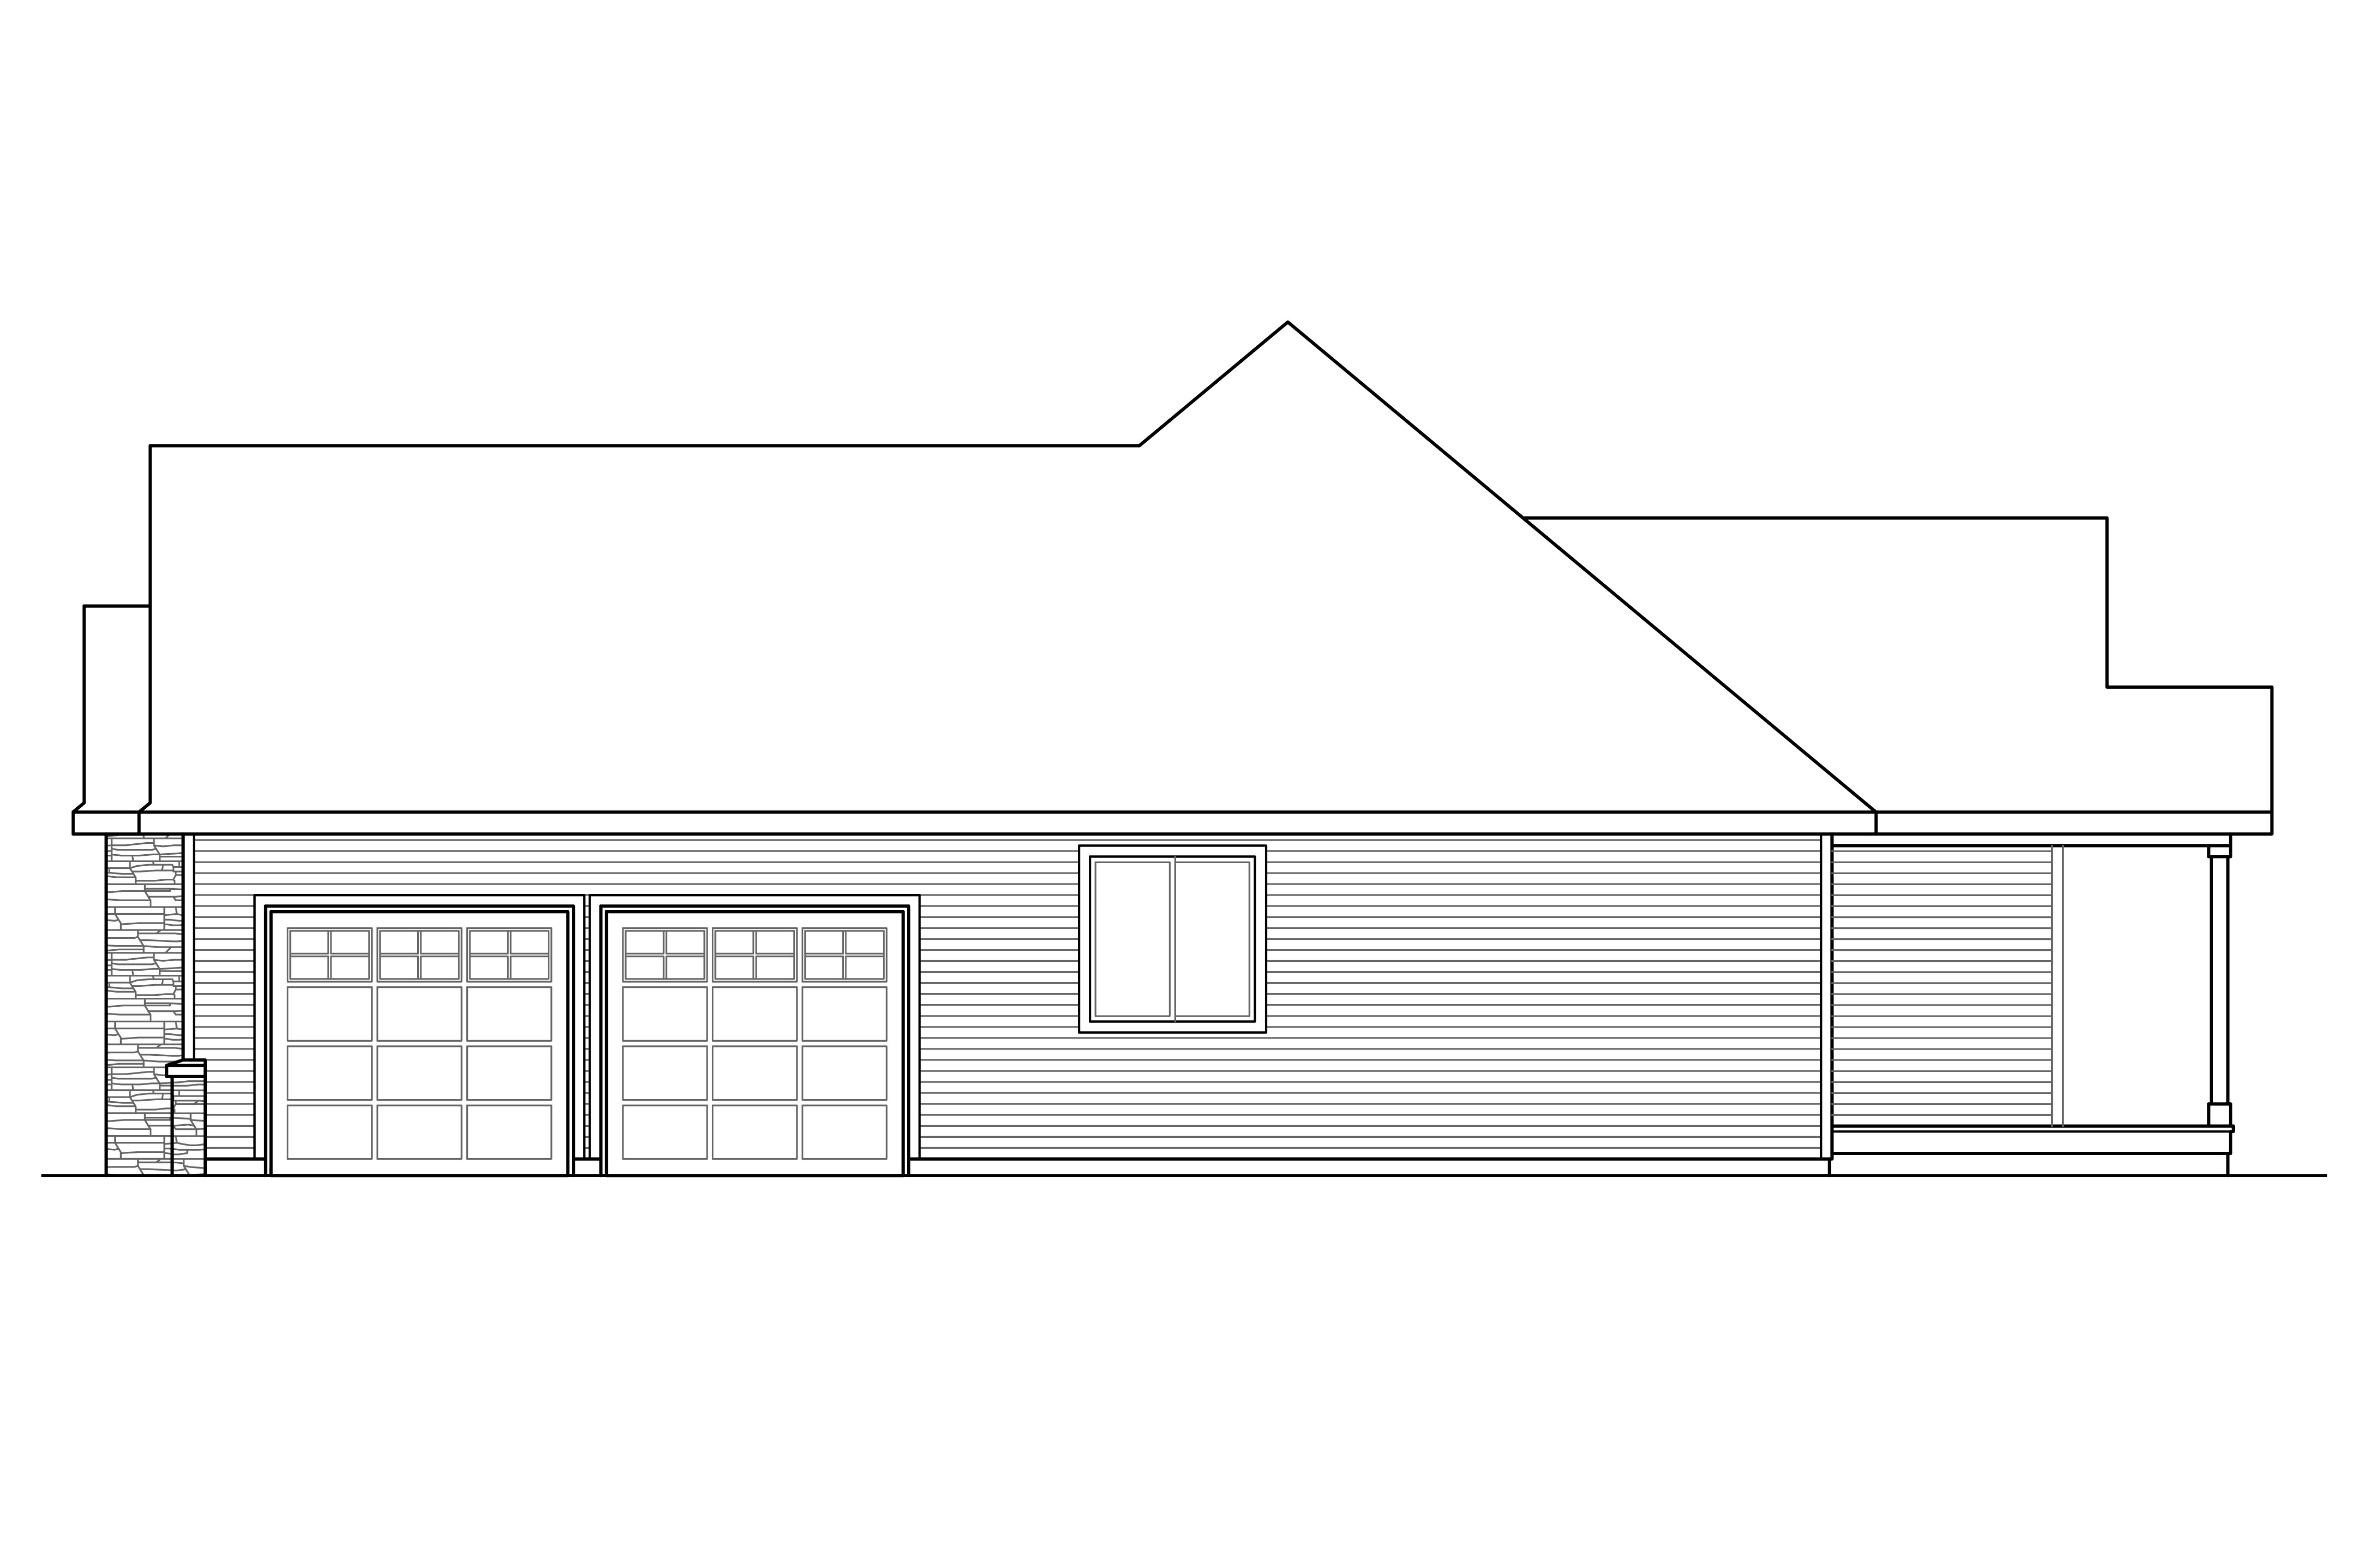 House Plans Elevation ranch house plans - manor heart 10-590 - associated designs